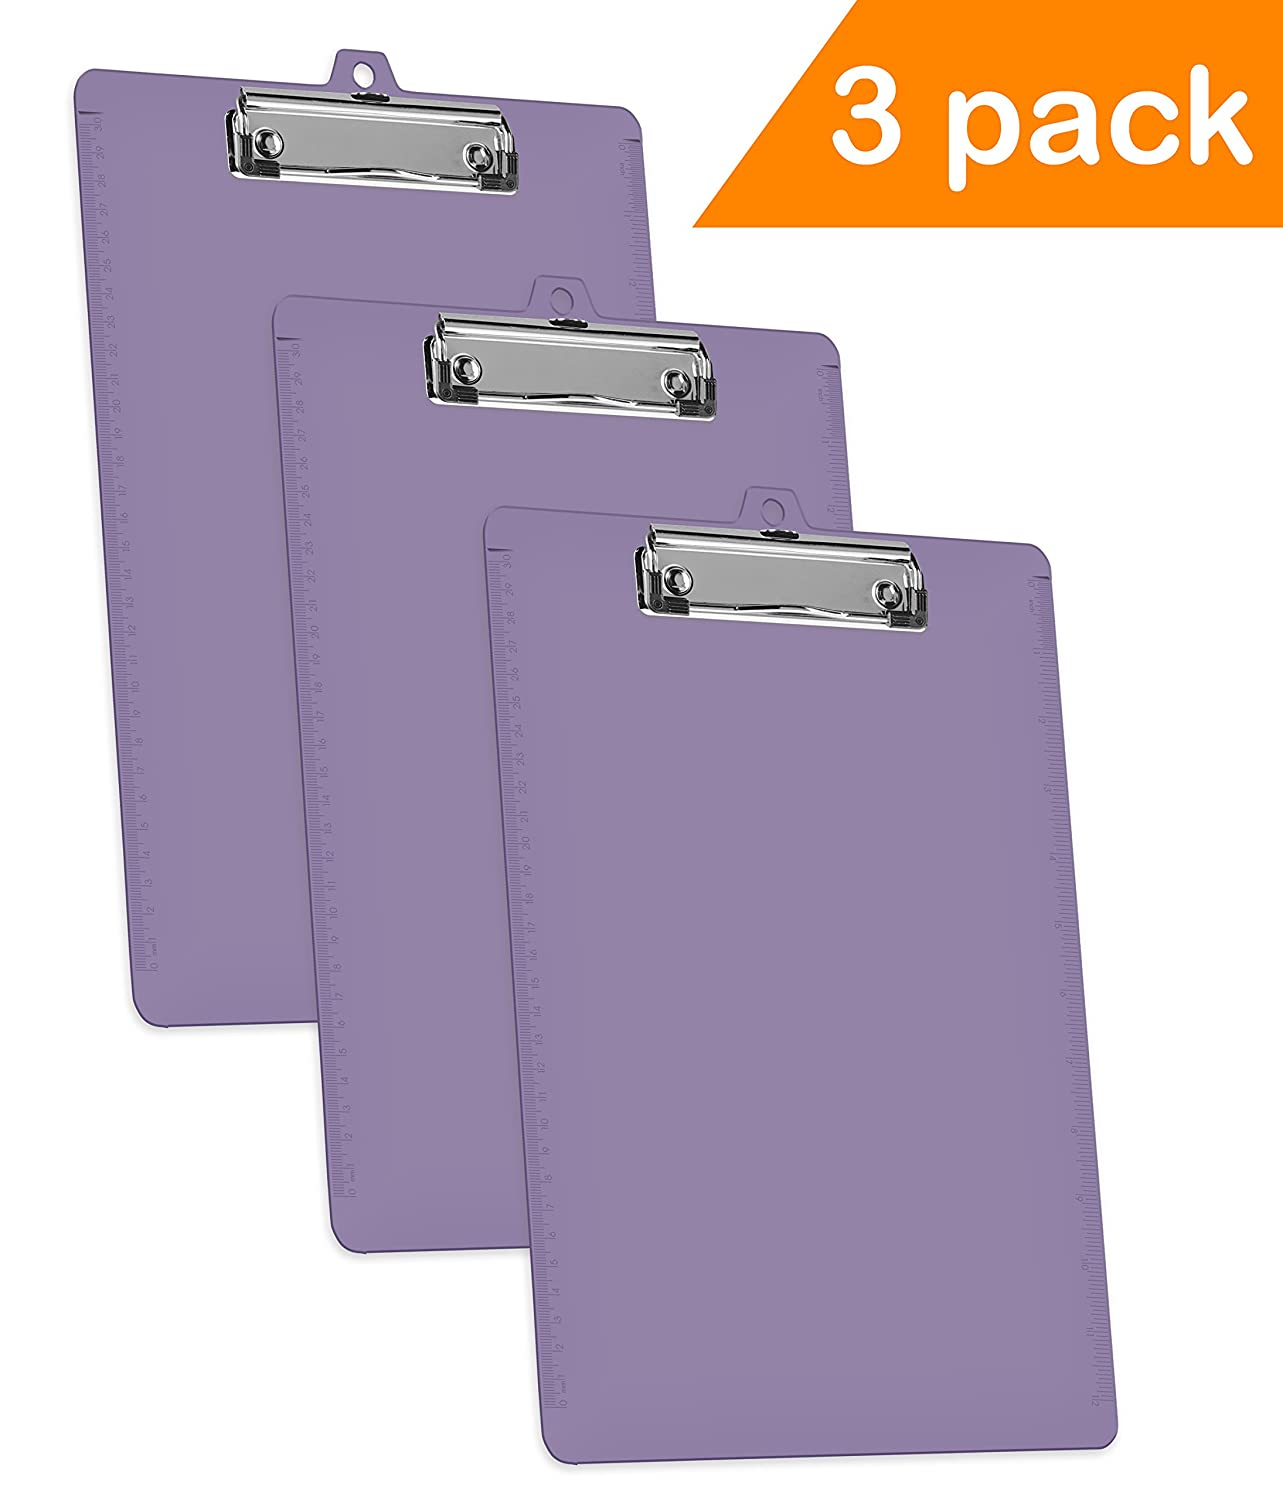 Acrimet Clipboard Low Profile Clip Letter Size A4 (Solid Purple Color) (3 Pack) 134.L.O